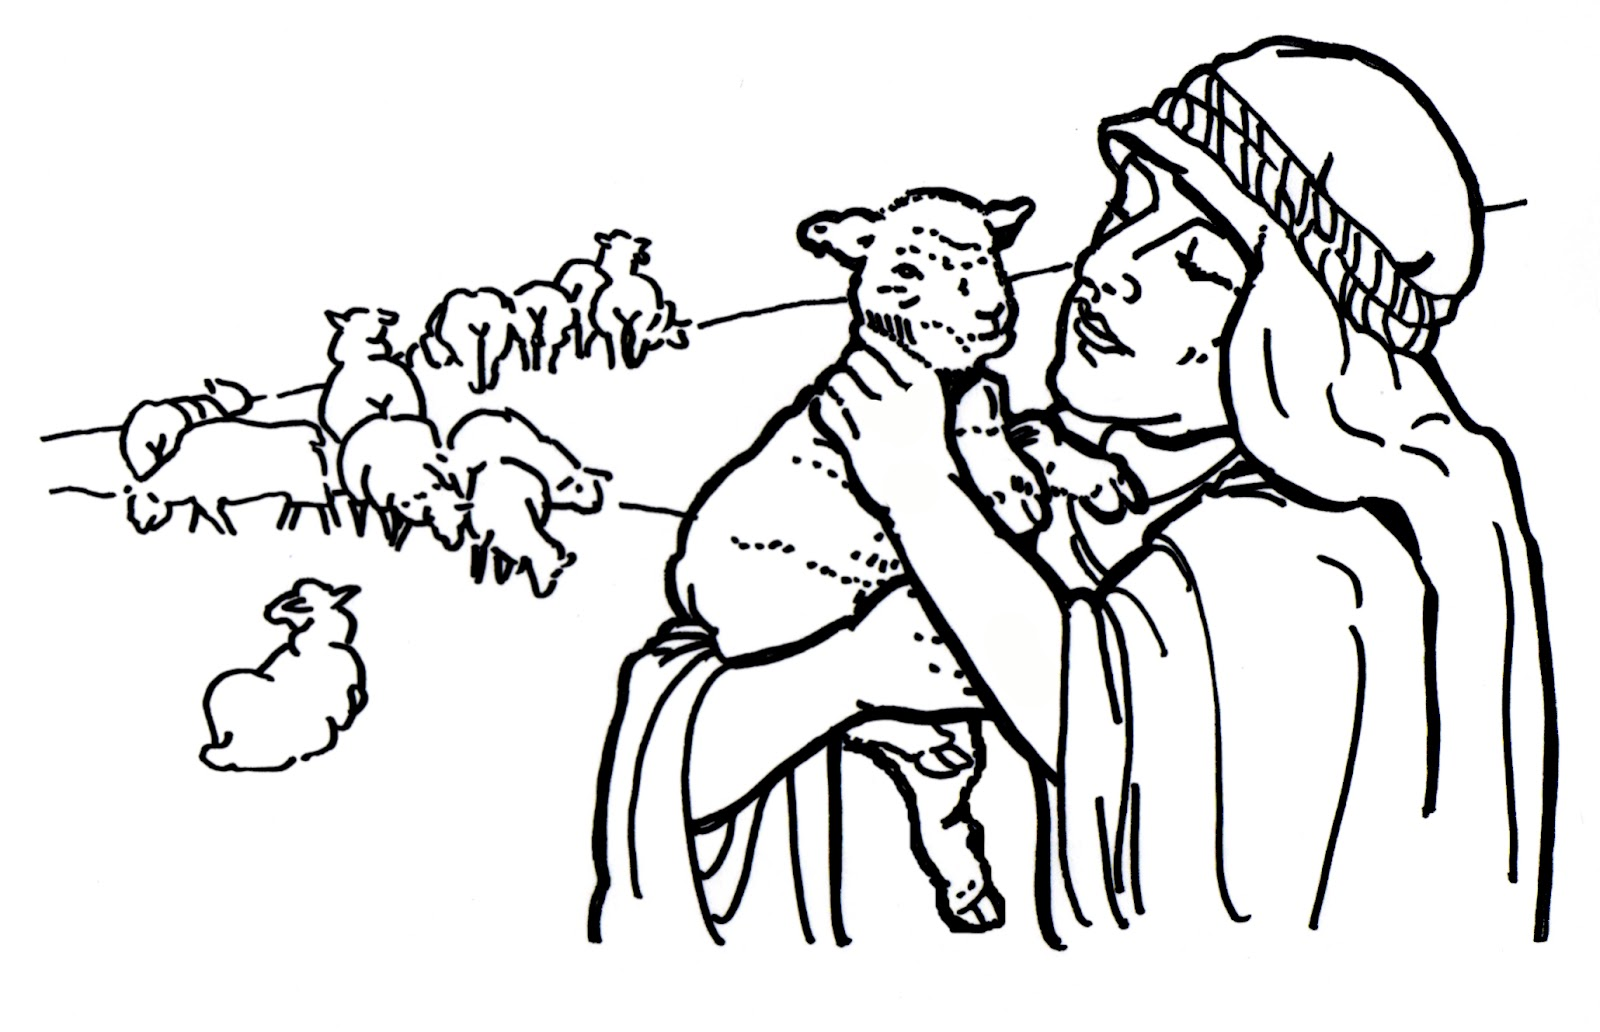 Good Shepherd and Lost Sheep Parable Coloring Pages